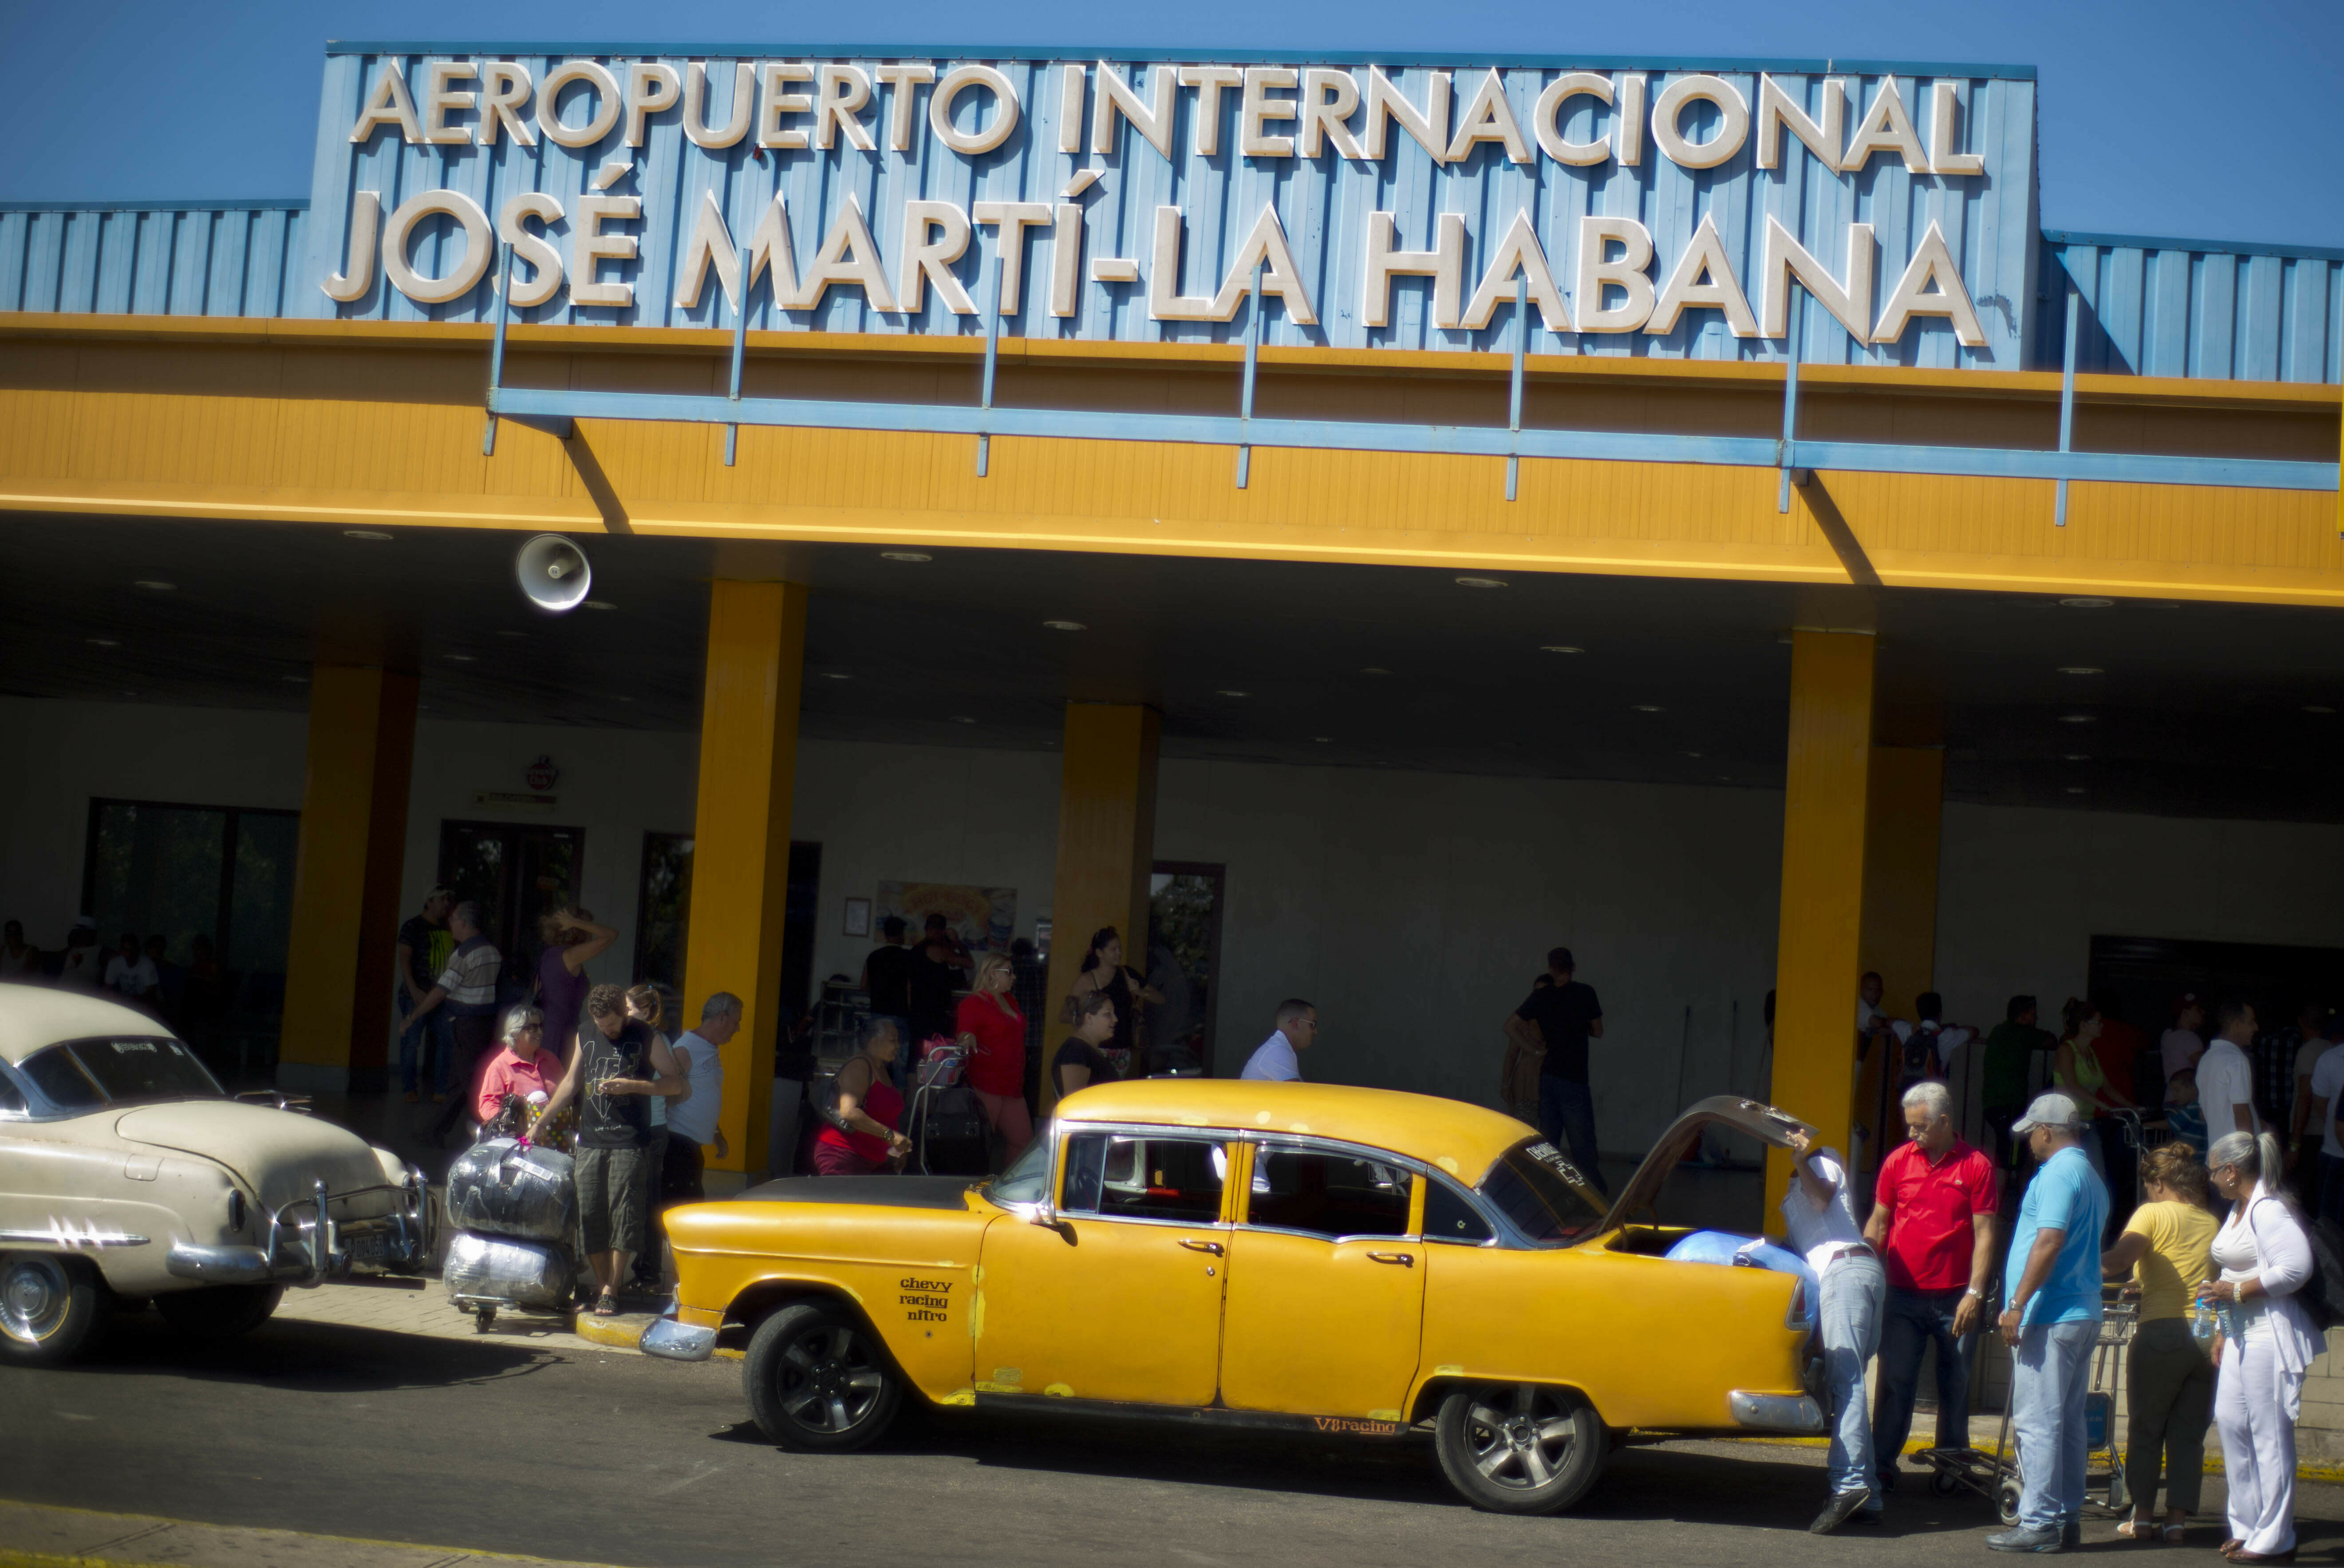 FILE - In this Sept. 1, 2014 file photo, people put their luggage in a private taxi as they arrive from the U.S. to the Jose Marti International Airport in Havana, Cuba. In 1958, the father of José Ramón López owned Cuba's main airport, its national airline and three small hotels. All were taken in Cuba's socialist revolution. Starting Thursday, they will be able to file lawsuits against European and American companies doing business on their former properties, thanks to the Trump administration's decision to activate a provision of the U.S. embargo on Cuba with the potential to affect foreign investment in Cuba for many years to come. (AP Photo/Ramon Espinosa, File)